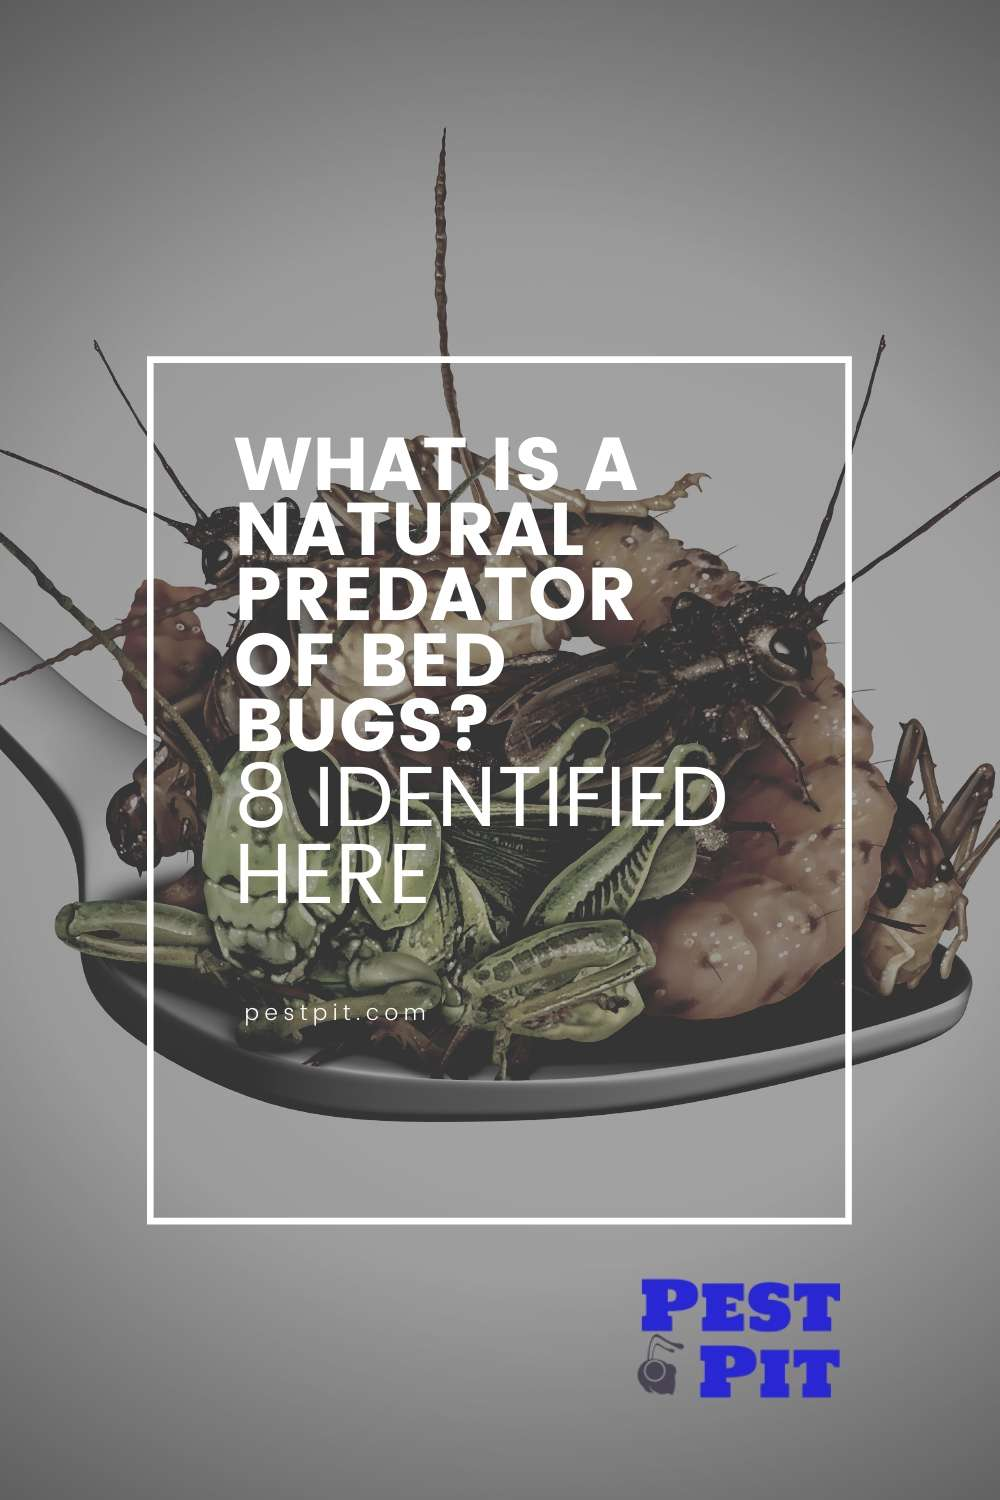 What Is A Natural Predator Of Bed Bugs